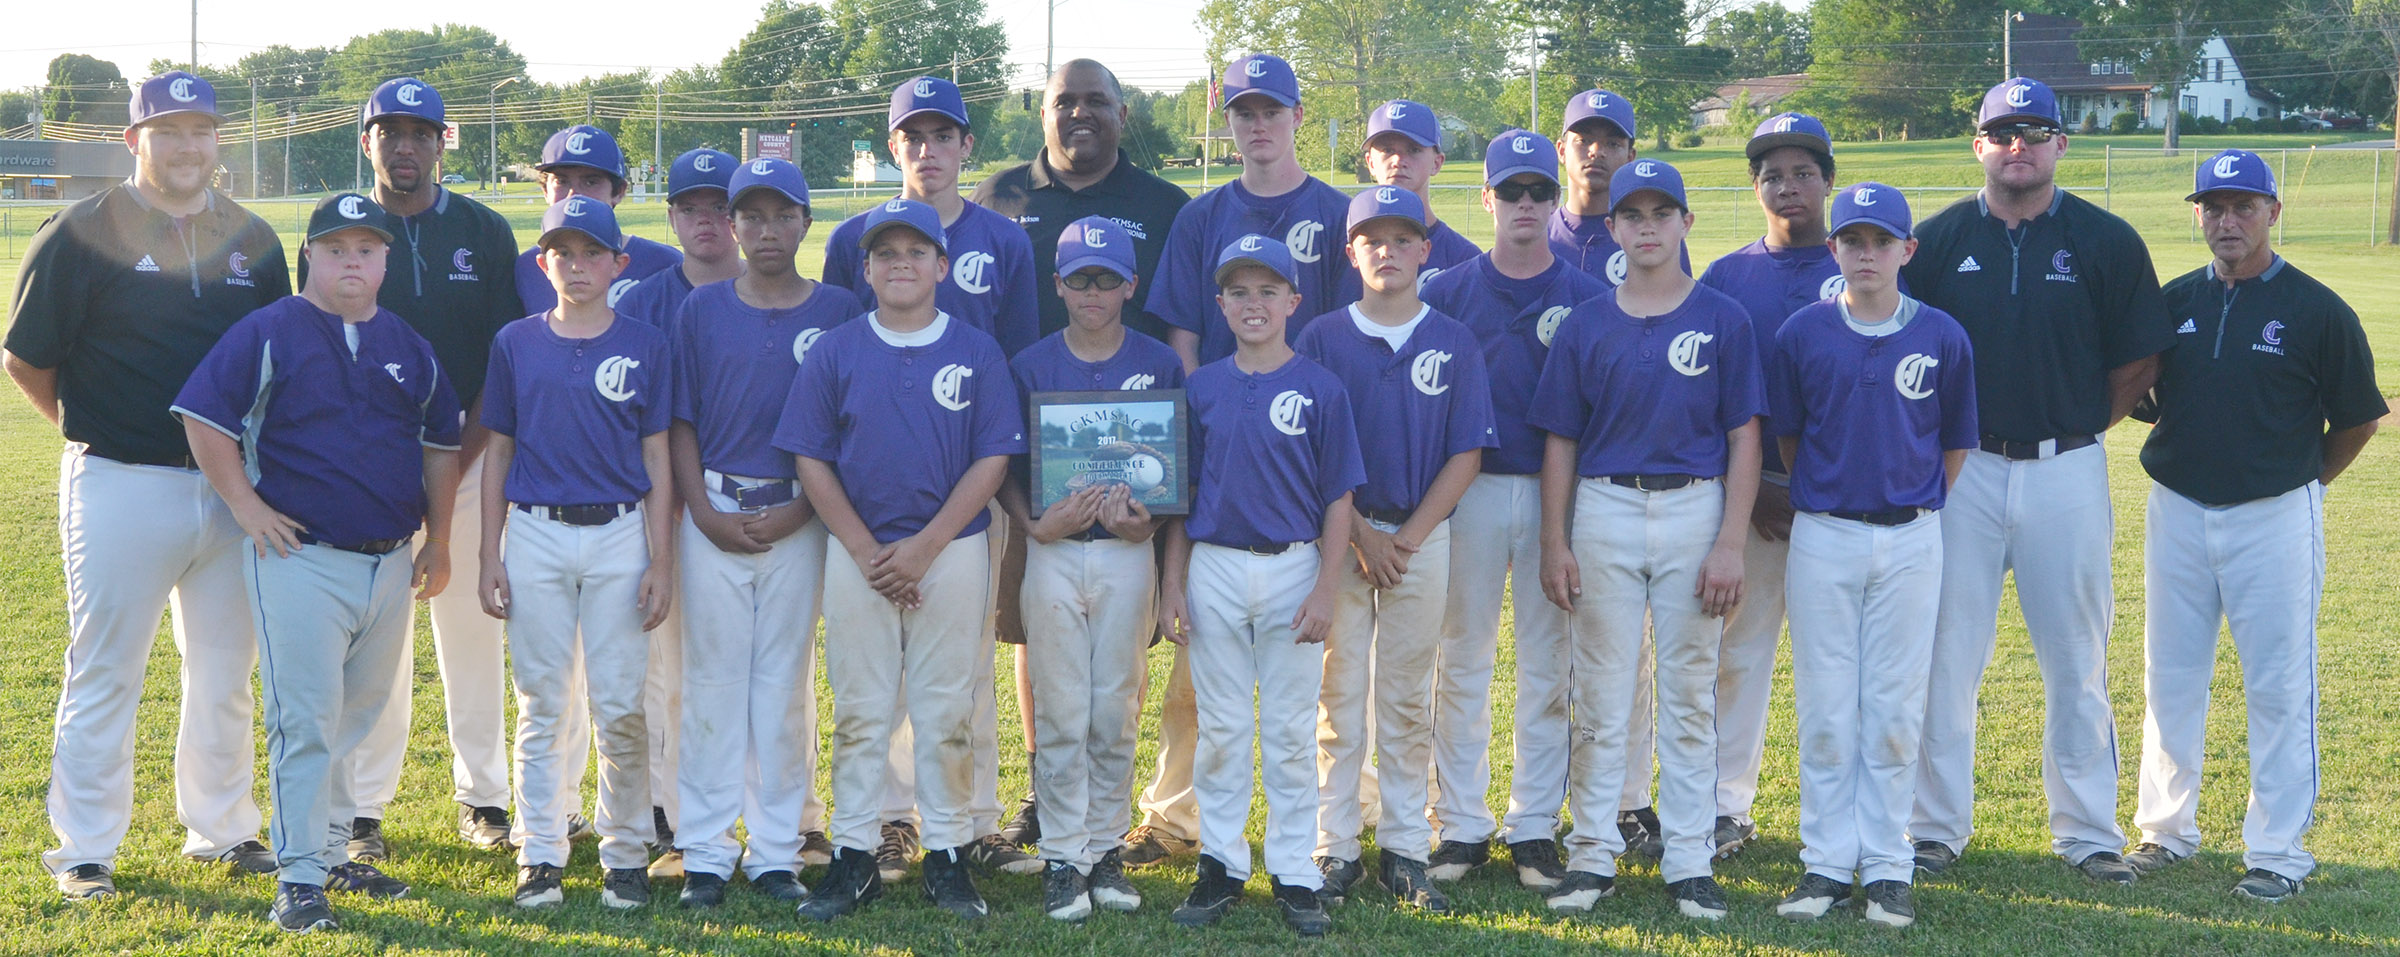 CMS baseball team is this year's Central Kentucky Middle School Athletic Conference tournament runners-up. From left, front, are eighth-grader Blase Wheatley's brother Brennan, seventh-grader Dakota Harris, eighth-grader Jastyn Shively, sixth-grader Kaydon Taylor, seventh-grader Logan Phillips, sixth-graders Chase Hord and Konner Forbis, eighth-grader Clark Kidwell and sixth-grader Bryce Newton. Back, assistant coaches Brett Sowell and George Boyd, seventh-grader Peyton Dabney, sixth-grader Hayden Jones, eighth-grader Kameron Smith, CKMSAC Commissioner Godfrey Jackson, eighth-graders Tristin Faulkner and Blase Wheatley, seventh-grader Seth Hash, eighth-grader Reggie Thomas, seventh-grader Bryson Karr, assistant coach Daniel Forbis and head coach Lynn Kearney.